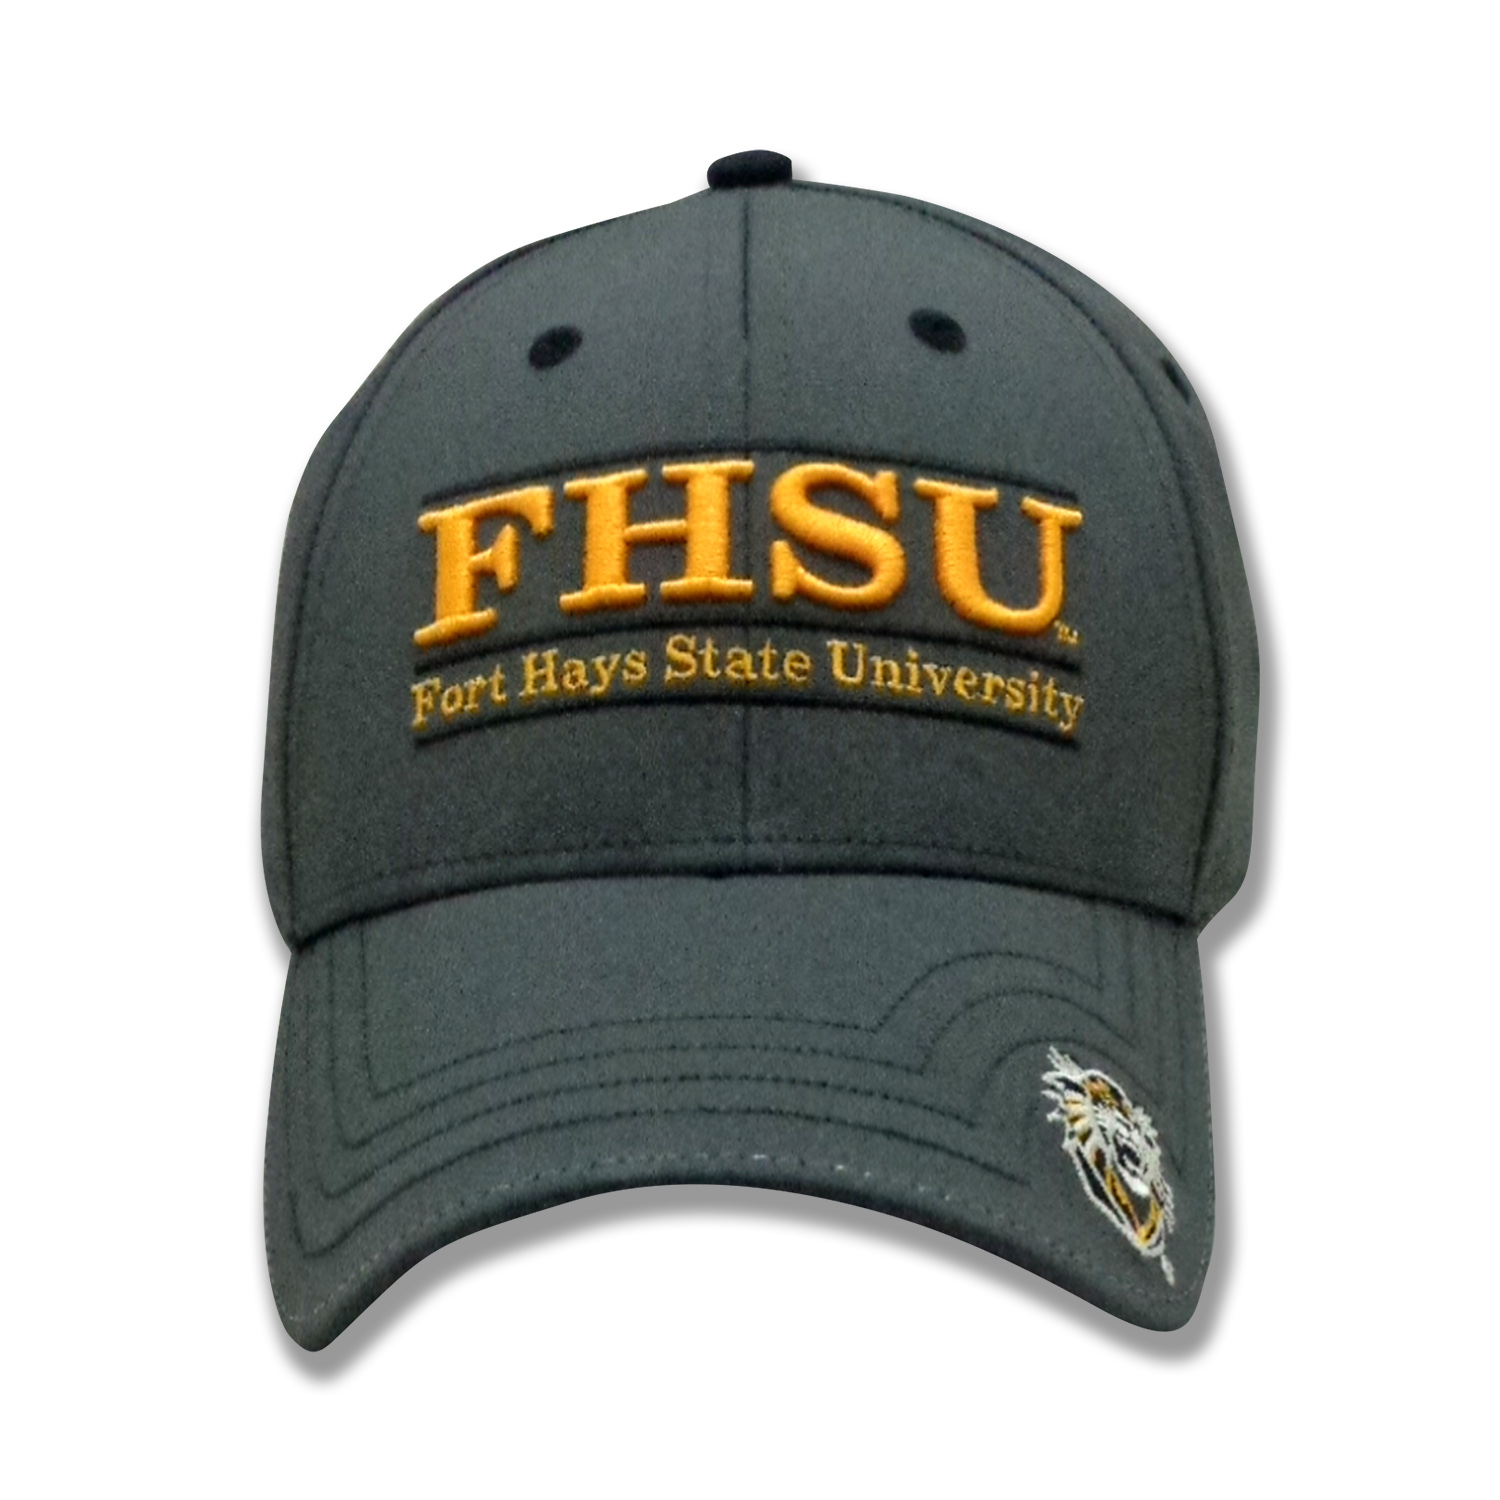 Alternative Image for the FHSU Game Changer Low Profile Hat, Slide Buckle Closure, Graphite, The Game product